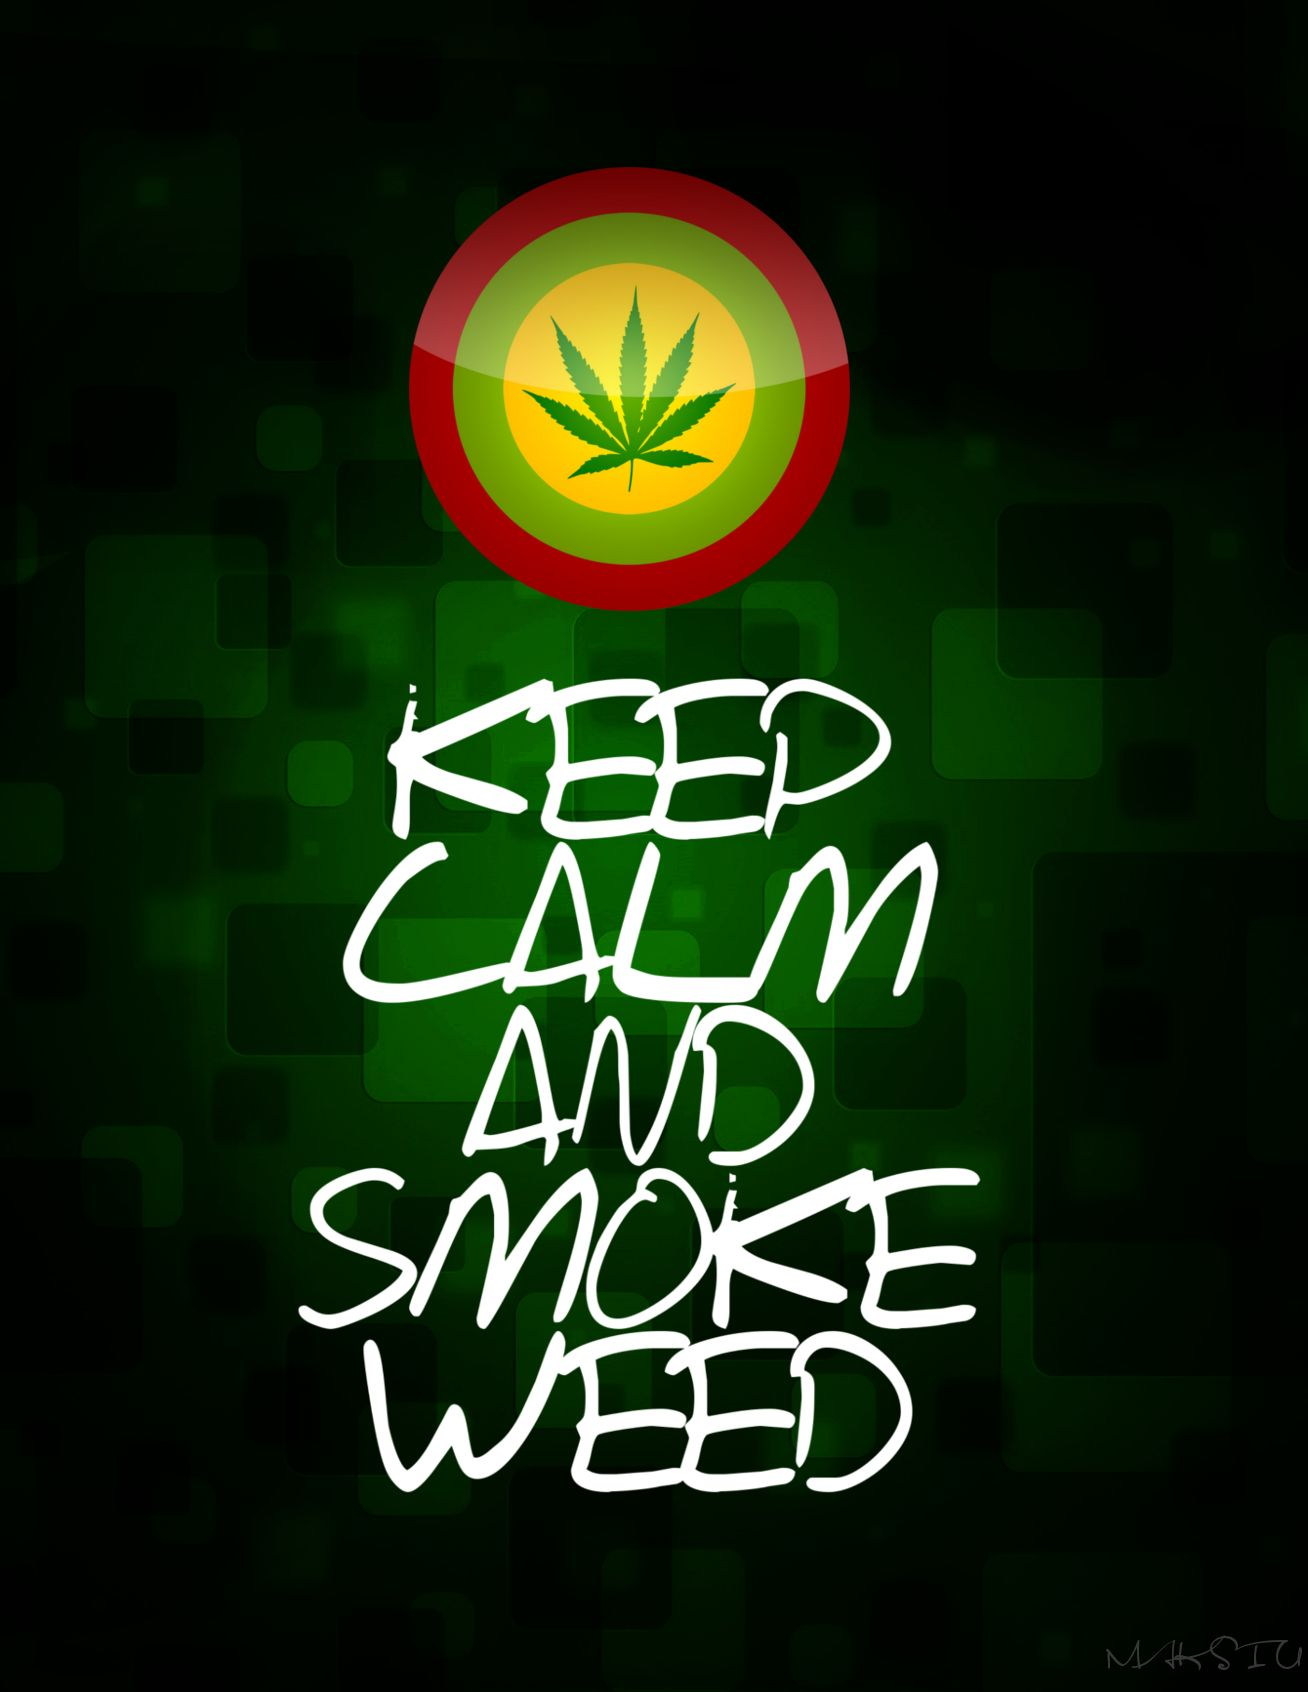 buy online 9f02e 6036c 1308x1692 Pin by wallawy on Sexy Wallpapers   Pinterest   Smoke weed  wallpaper